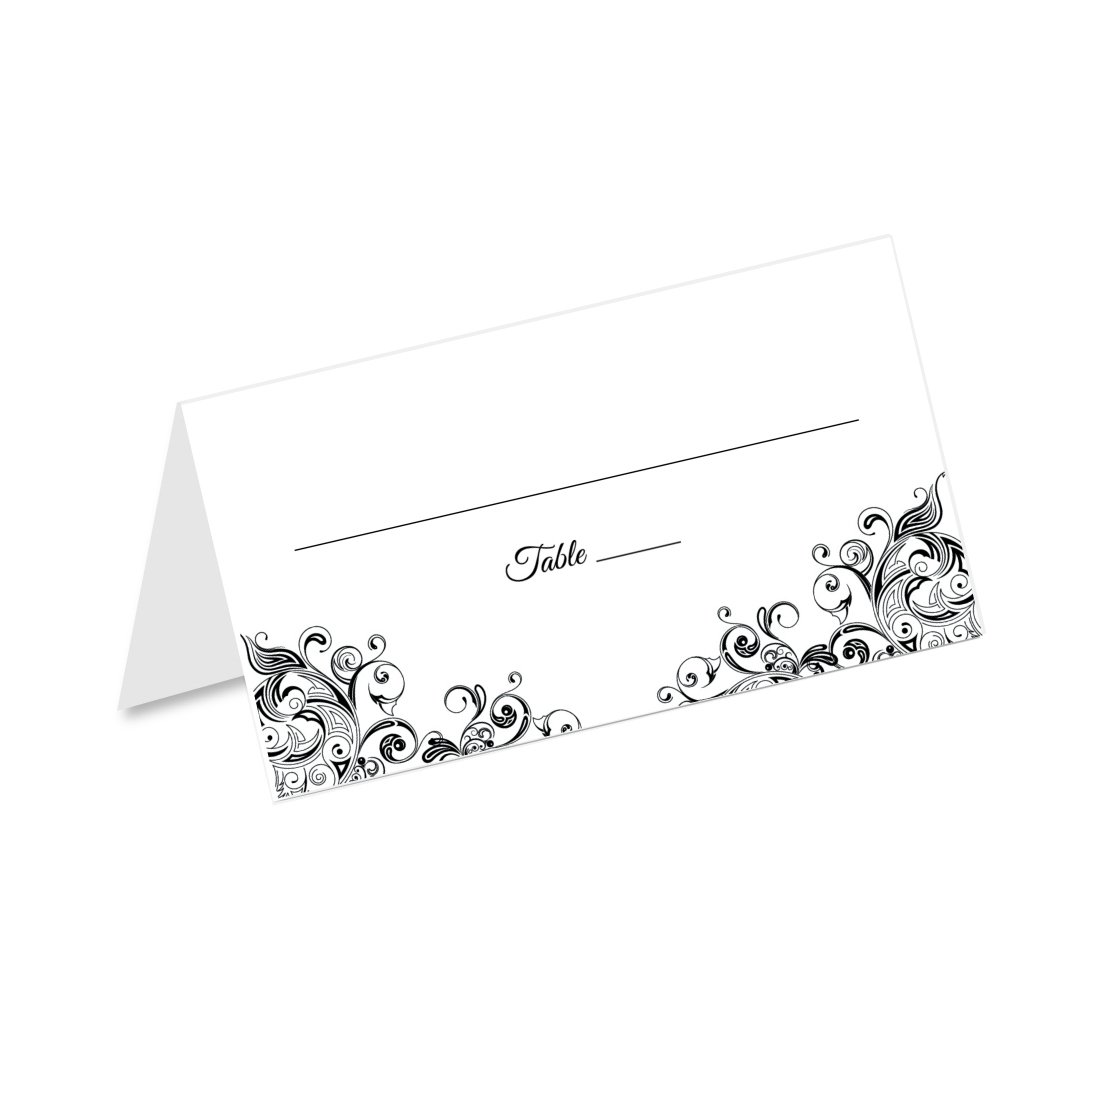 Black and White Flourish Swirl Wedding Tented Table Place Cards (50 Count) - Fold Over Tent Style - Wedding Reception, Bridal Shower, Anniversary Party, Dinner Banquet Place Seating Cards